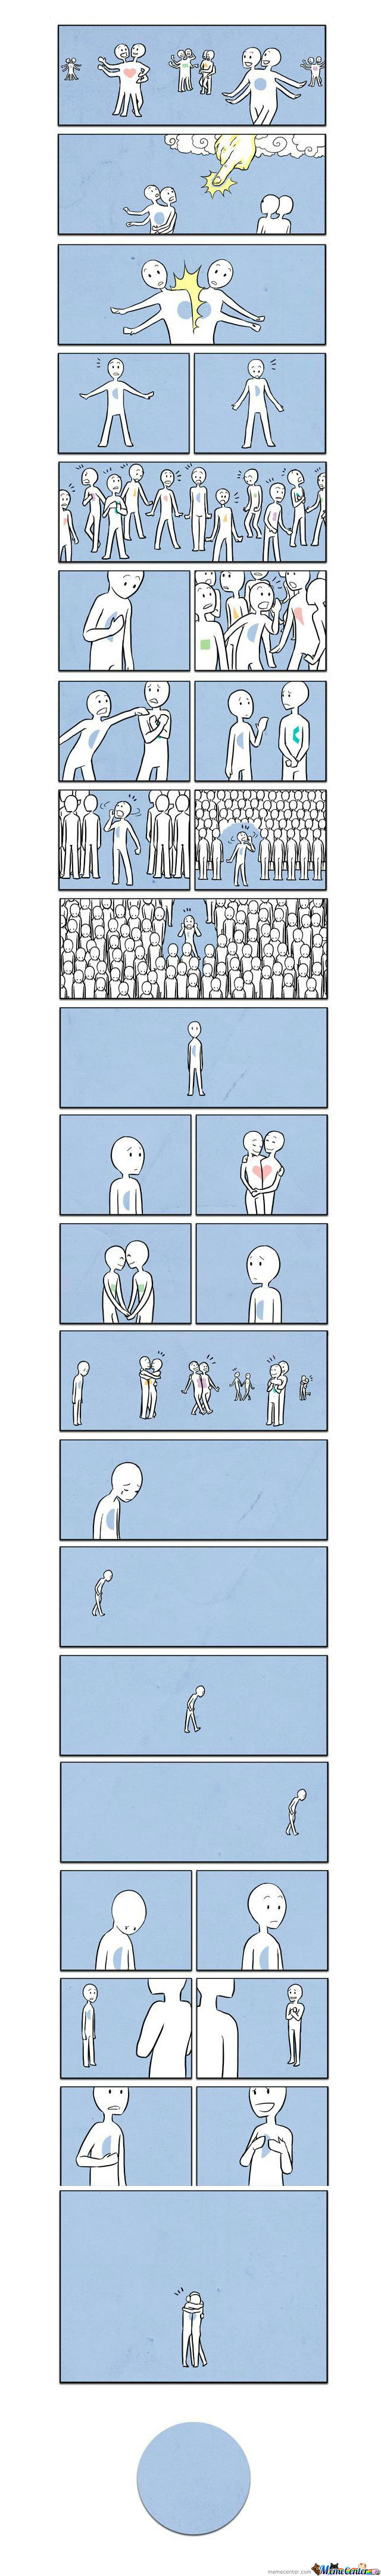 How Love Works (Really Long)